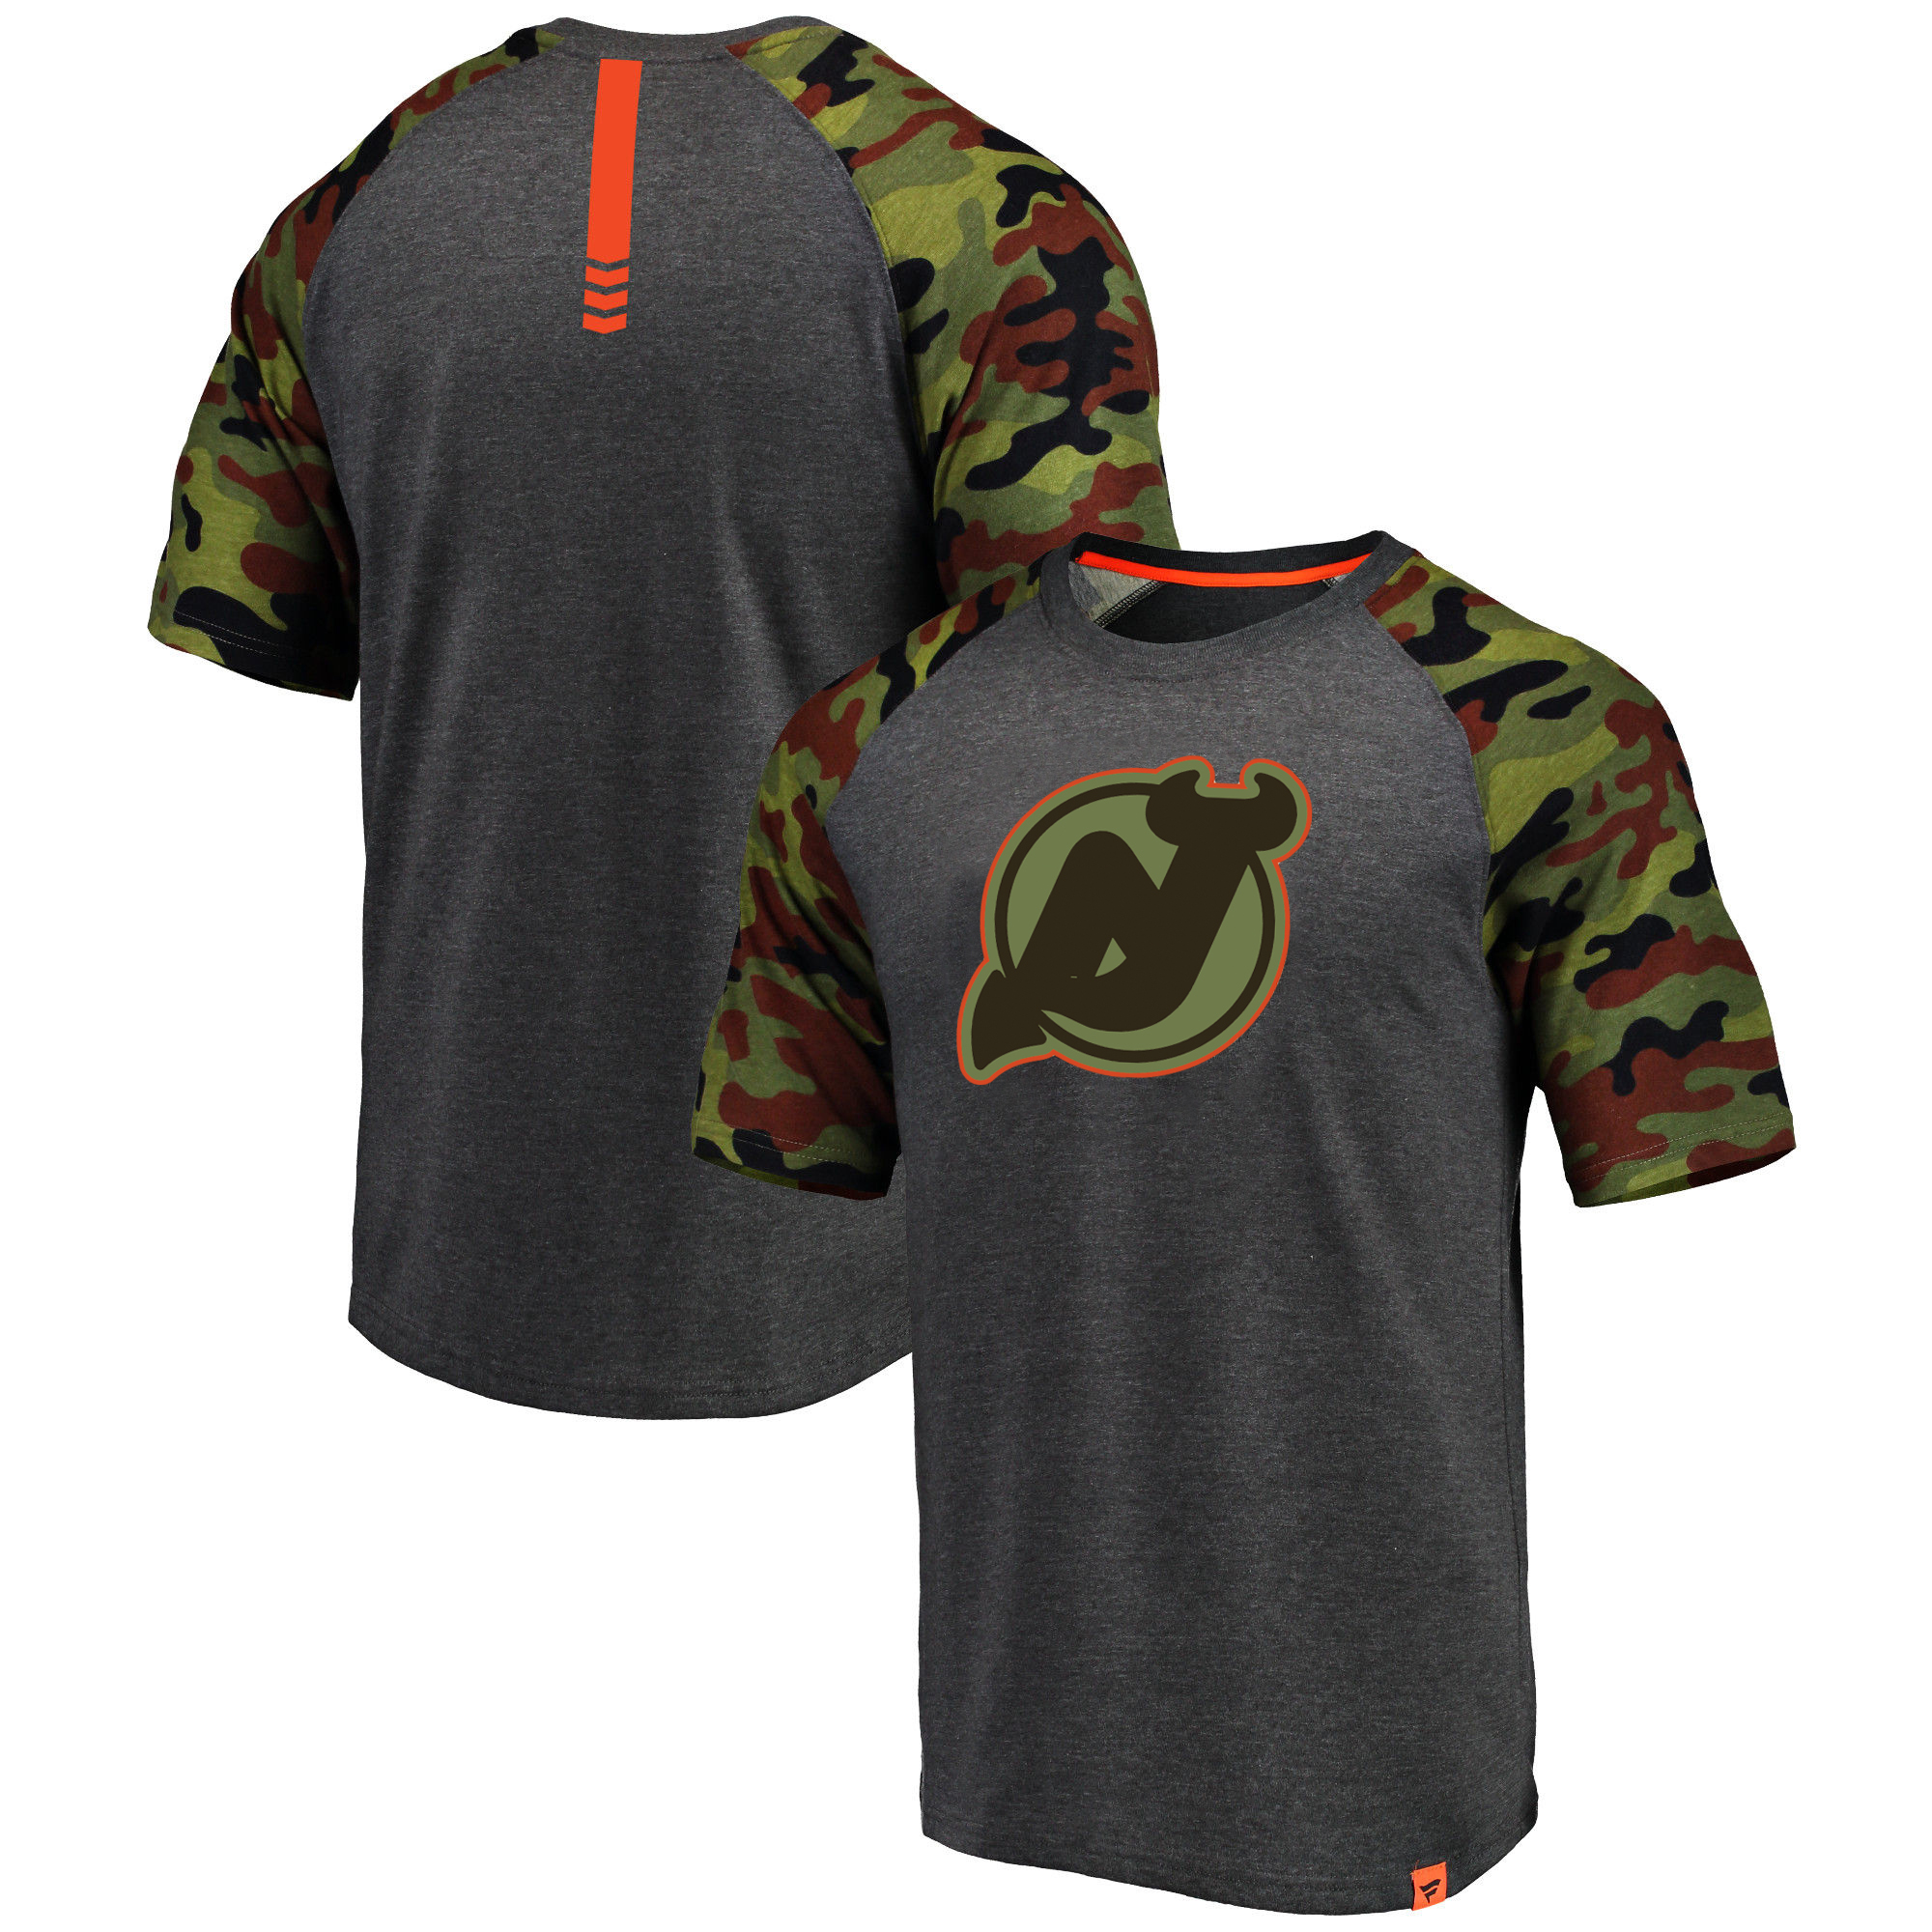 New Jersey Devils Fanatics Branded Heathered Gray/Camo Recon Camo Raglan T-Shirt